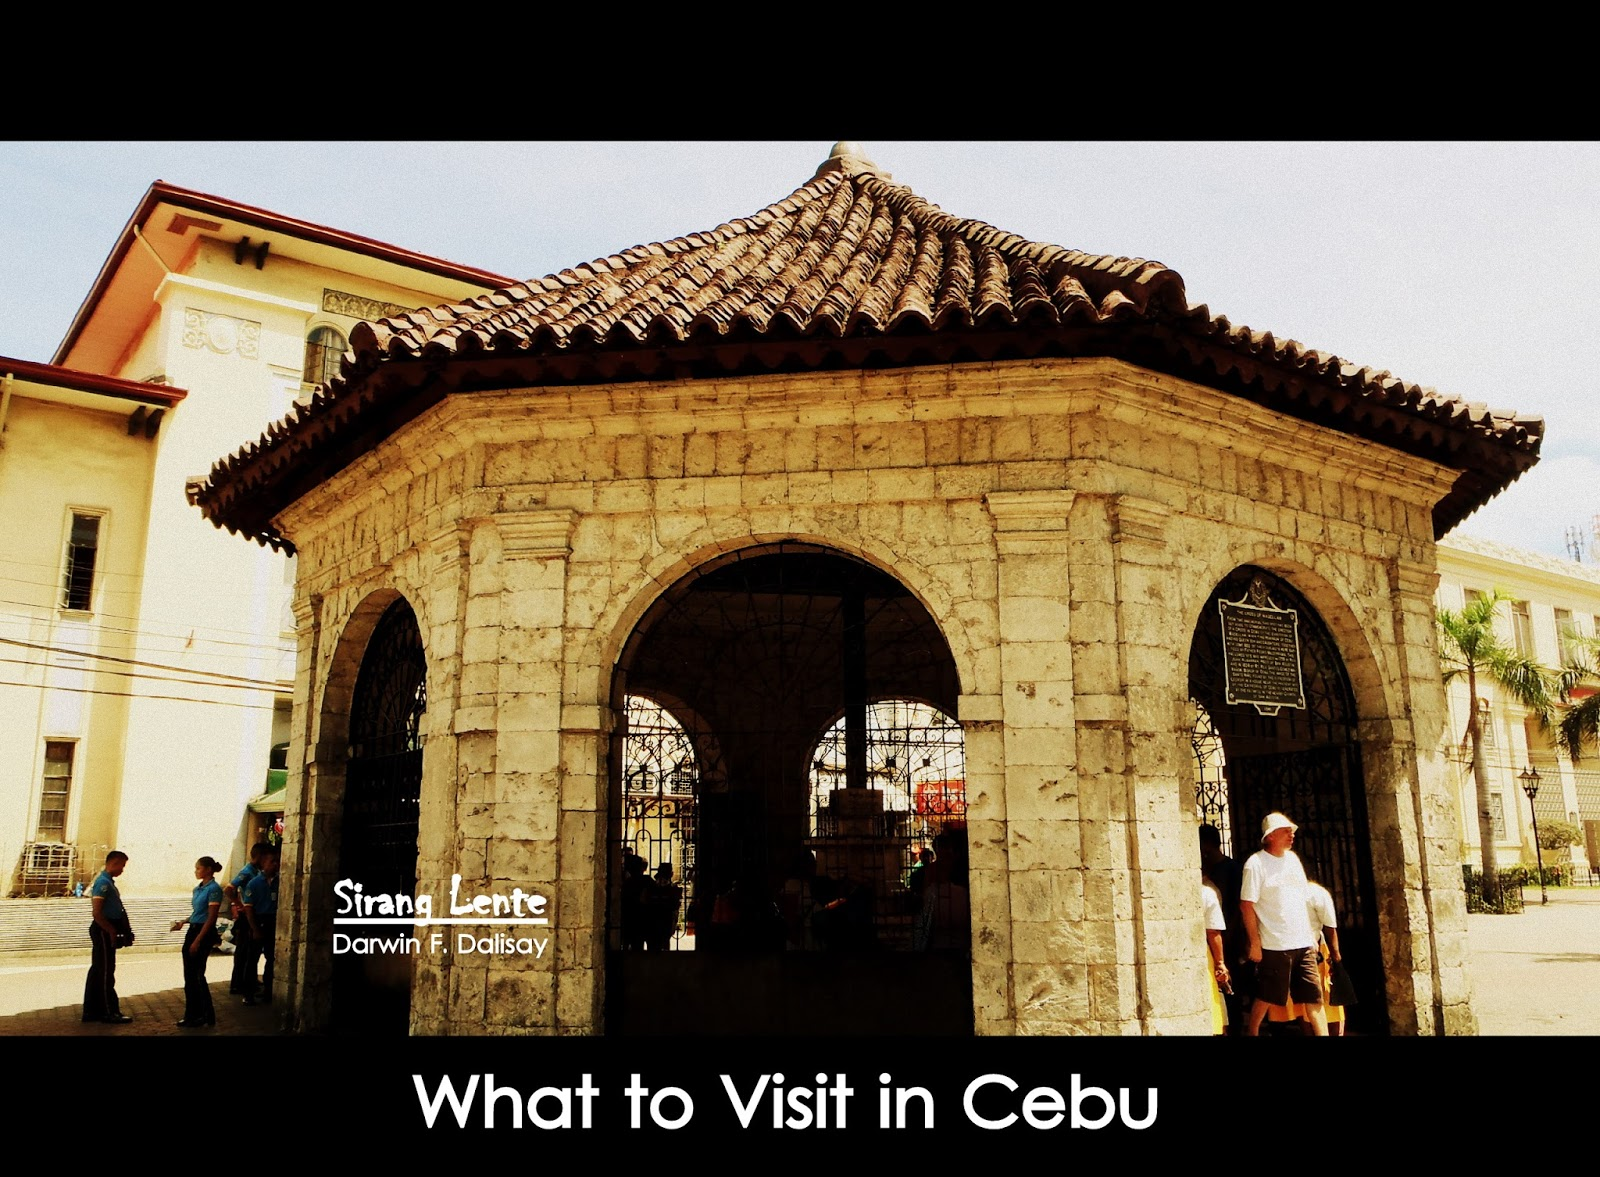 2019 Cebu travel guide and itinerary